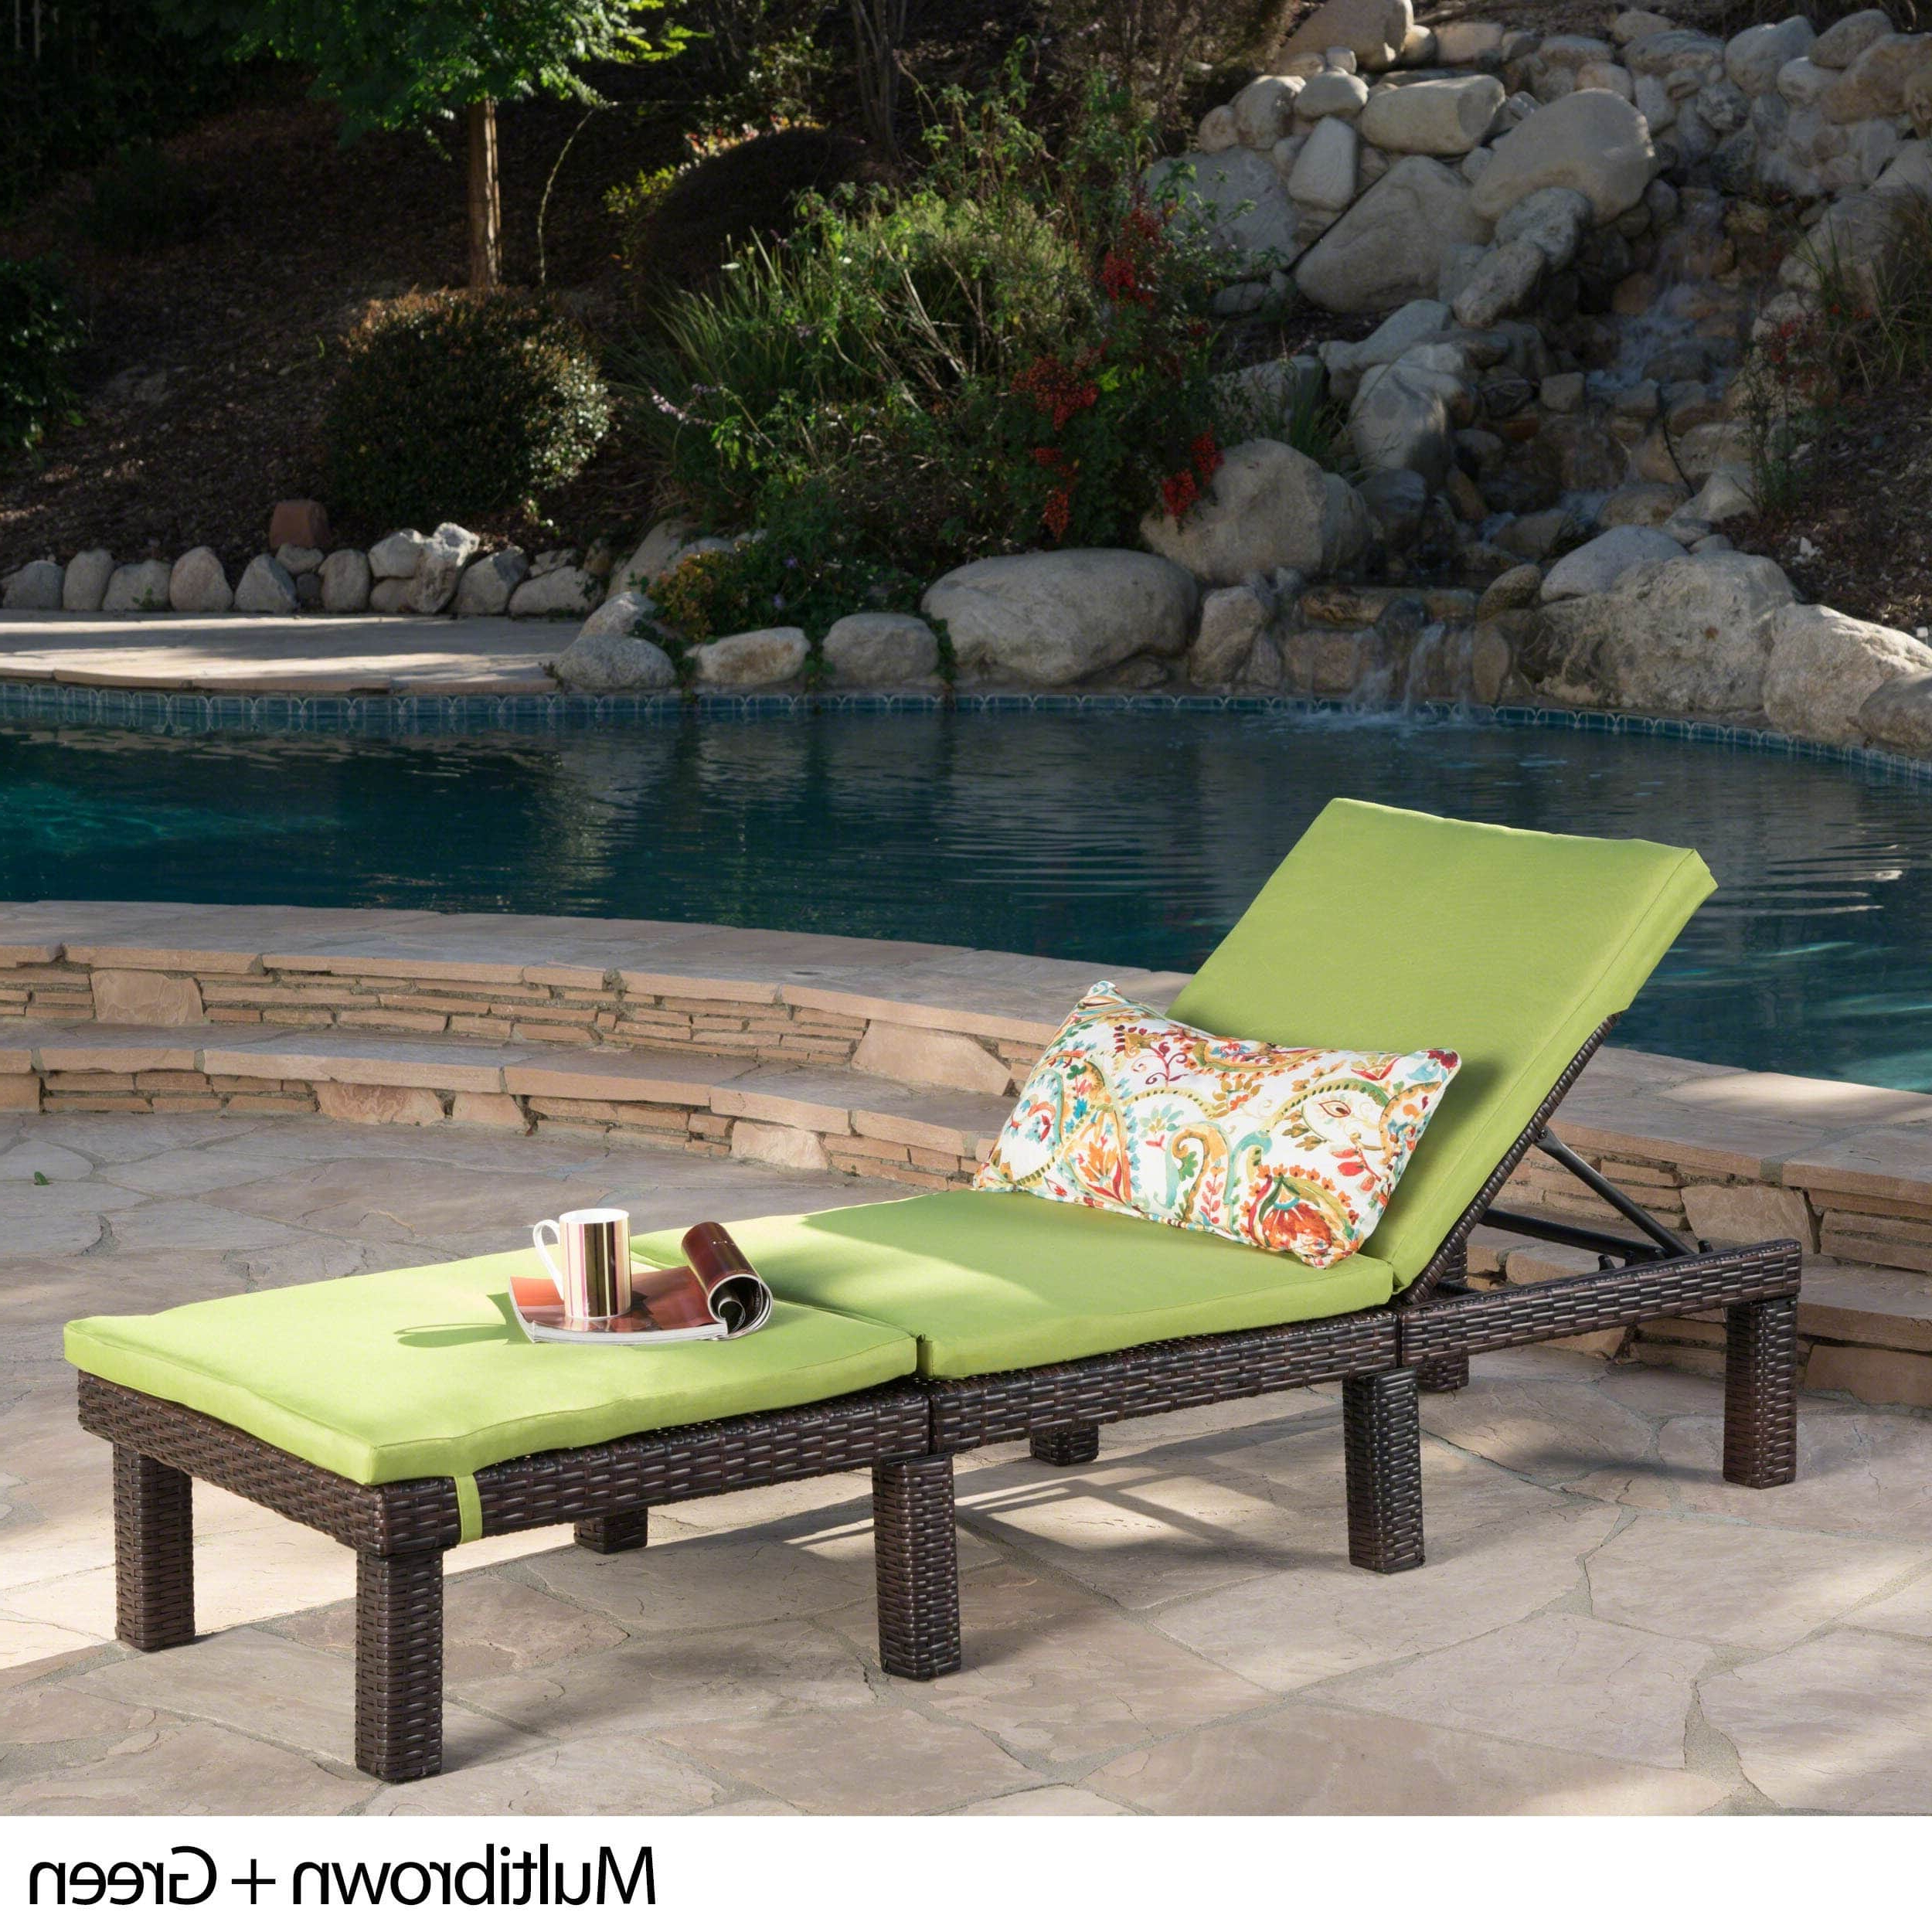 Christopher Knight Home Jamaica Outdoor Chaise Lounge With Cushion By Pertaining To Current Jamaica Outdoor Wicker Chaise Lounges With Cushion (View 9 of 25)